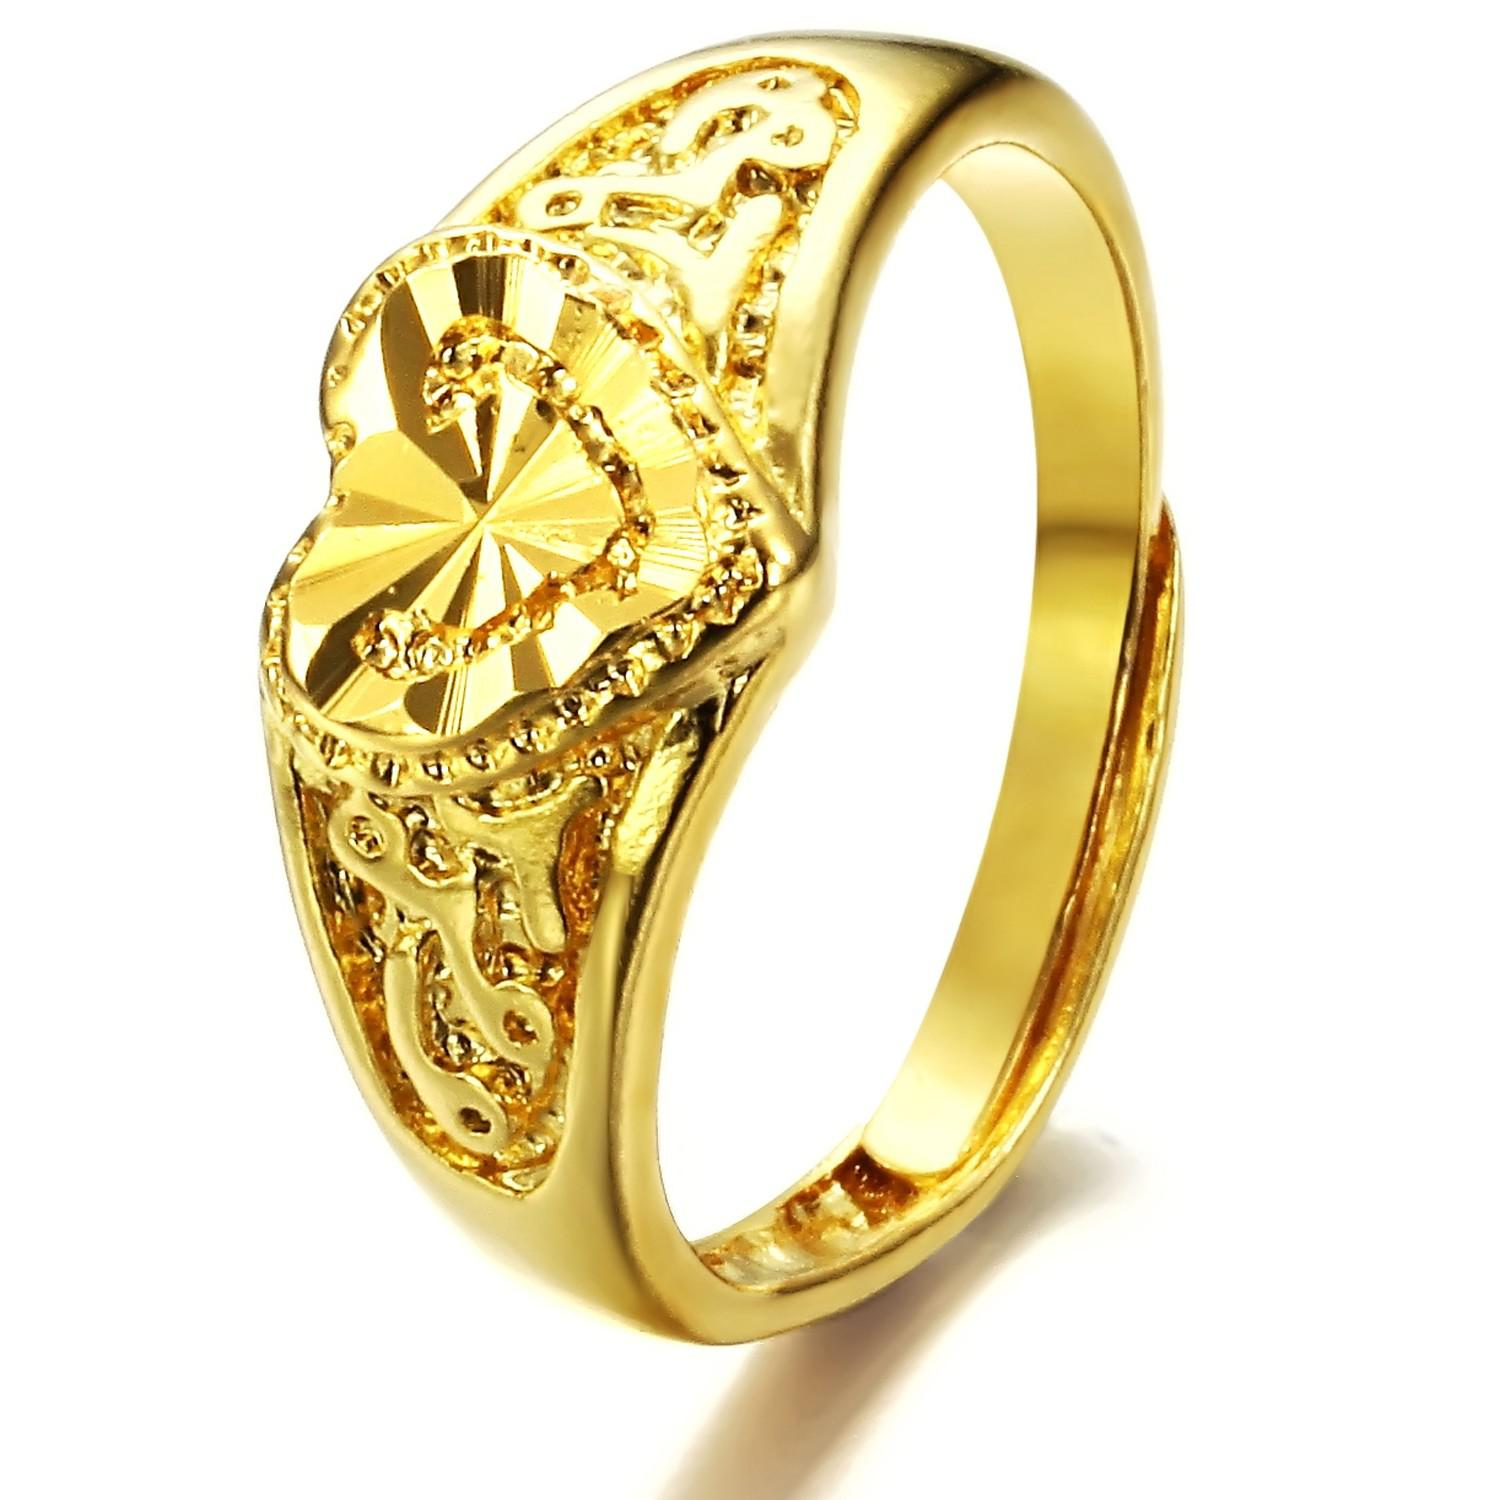 wedding rings gold wedding rings for sale Download